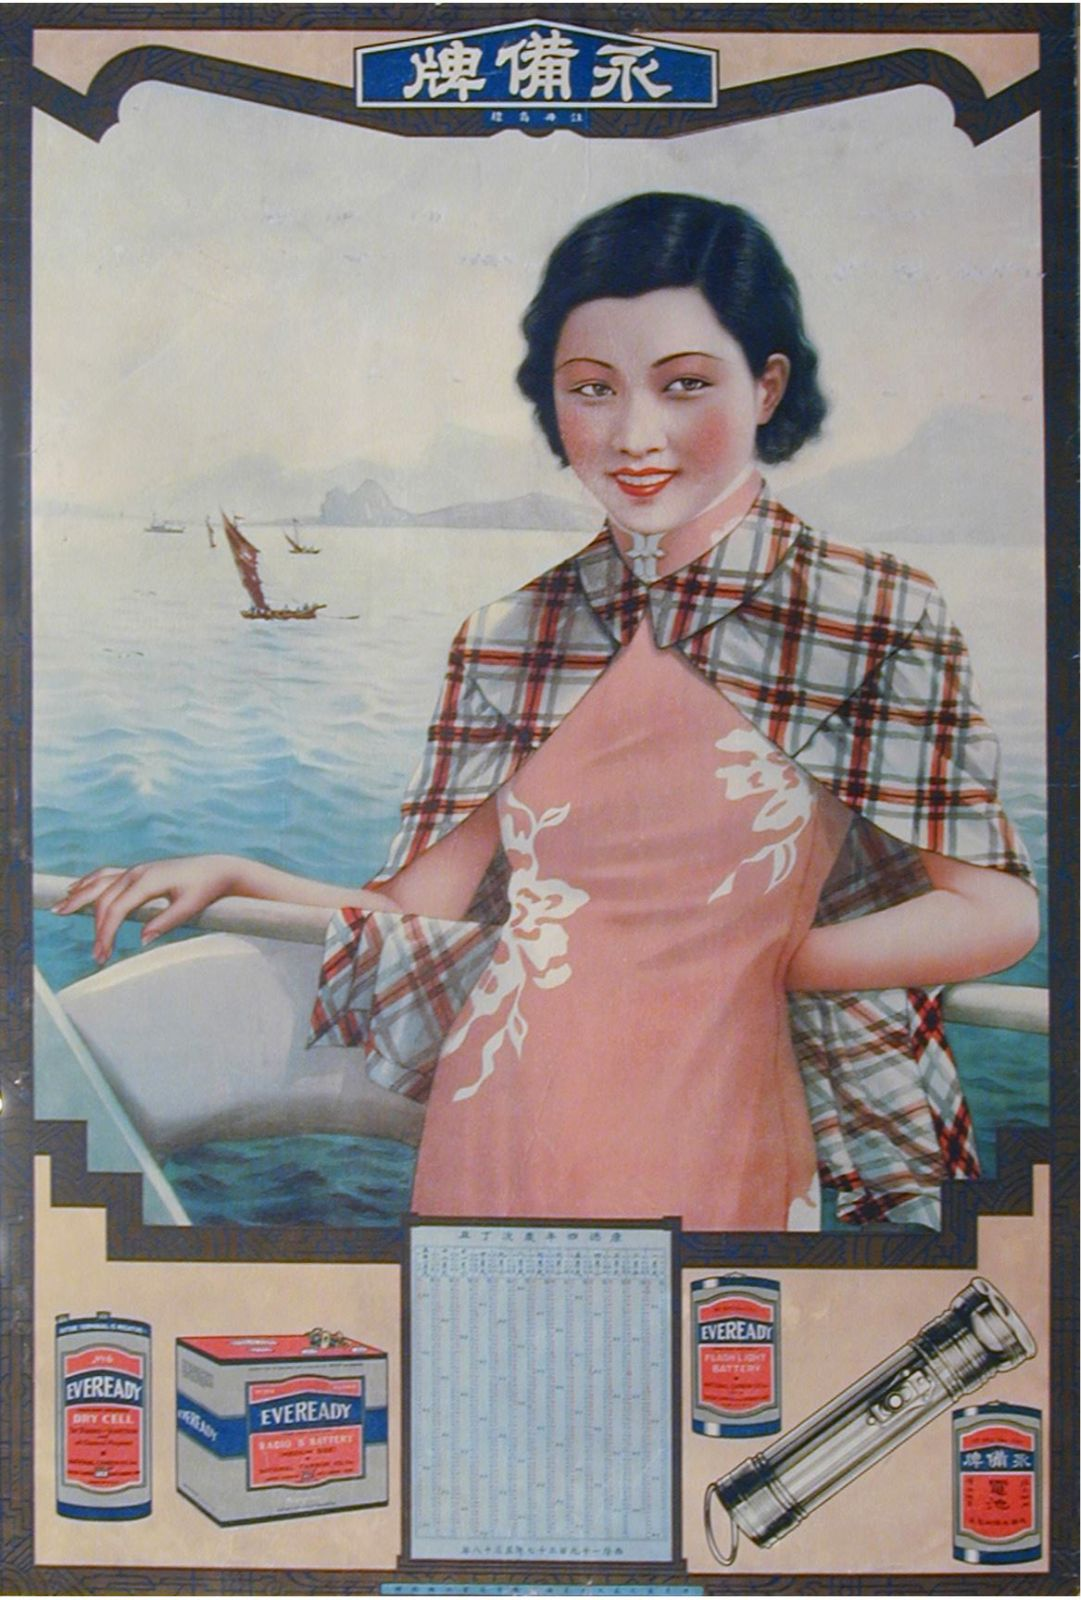 RBG_Chinese Deco_234, Advertisement for Eveready Batteries, 1937-38.jpg